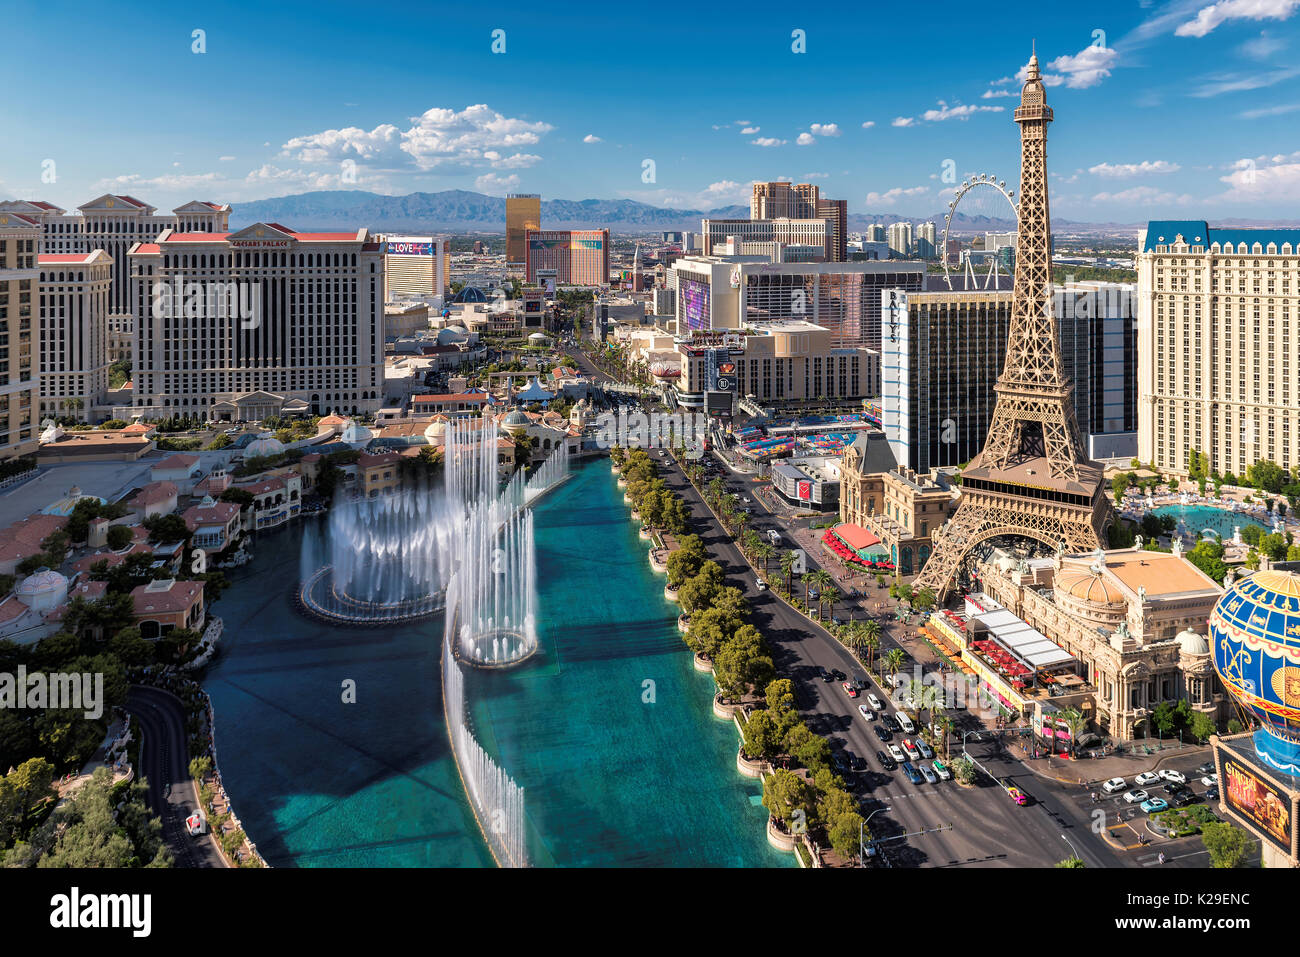 Las Vegas Strip at sunny day - Stock Image